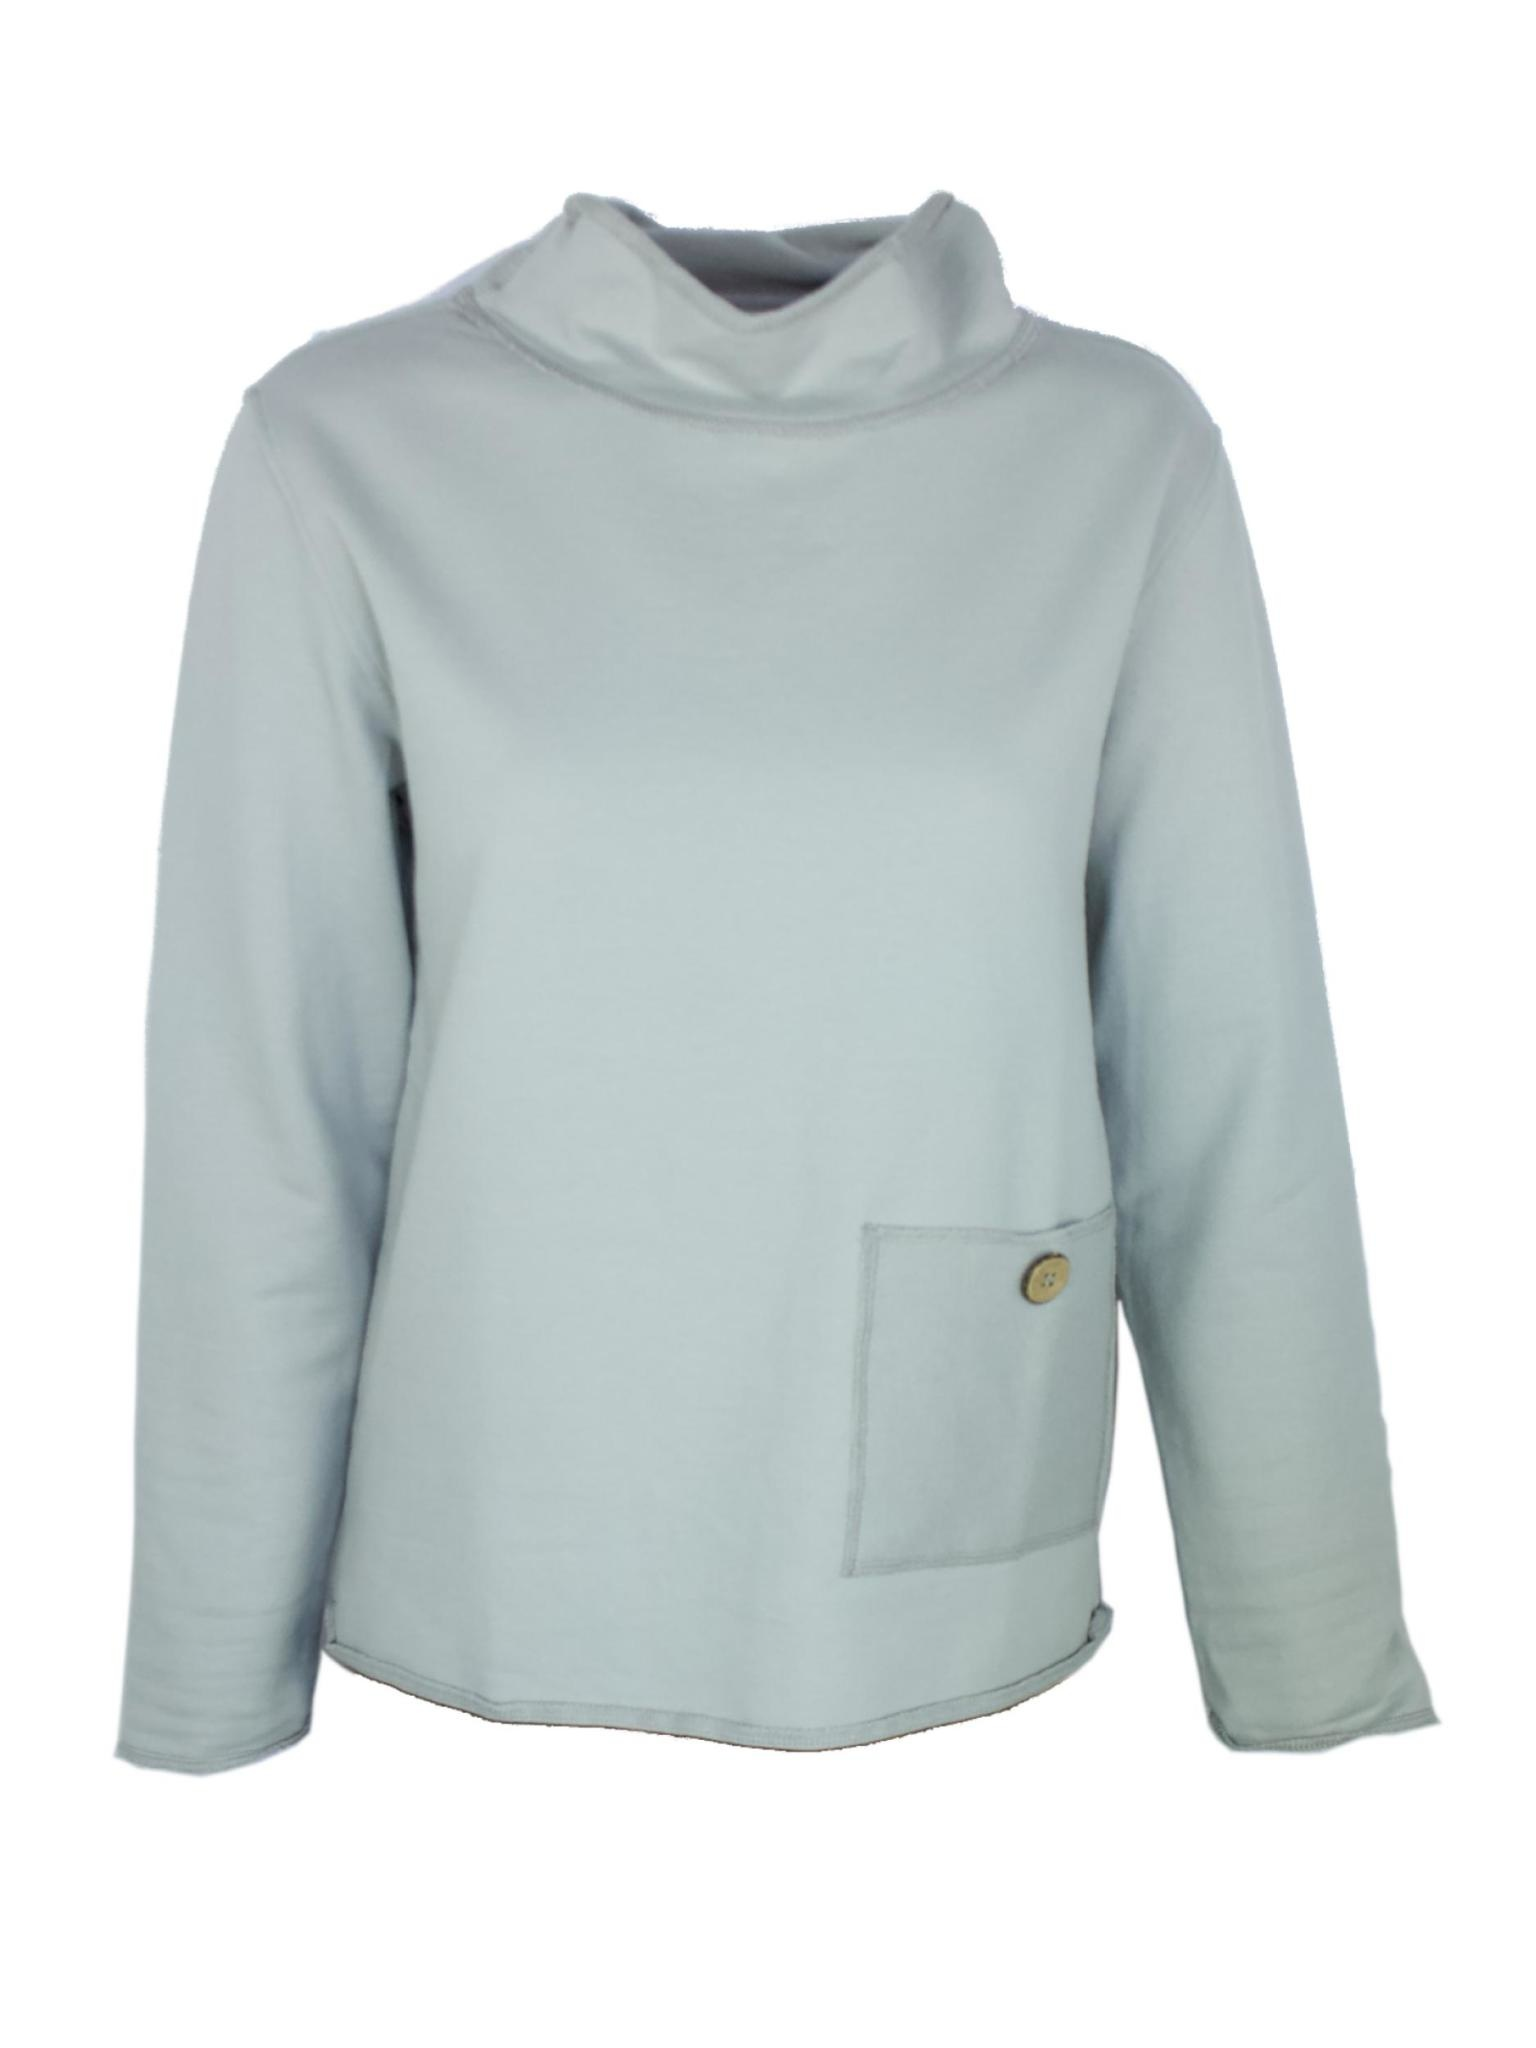 Escape by Habitat French Terry Pocket Pullover